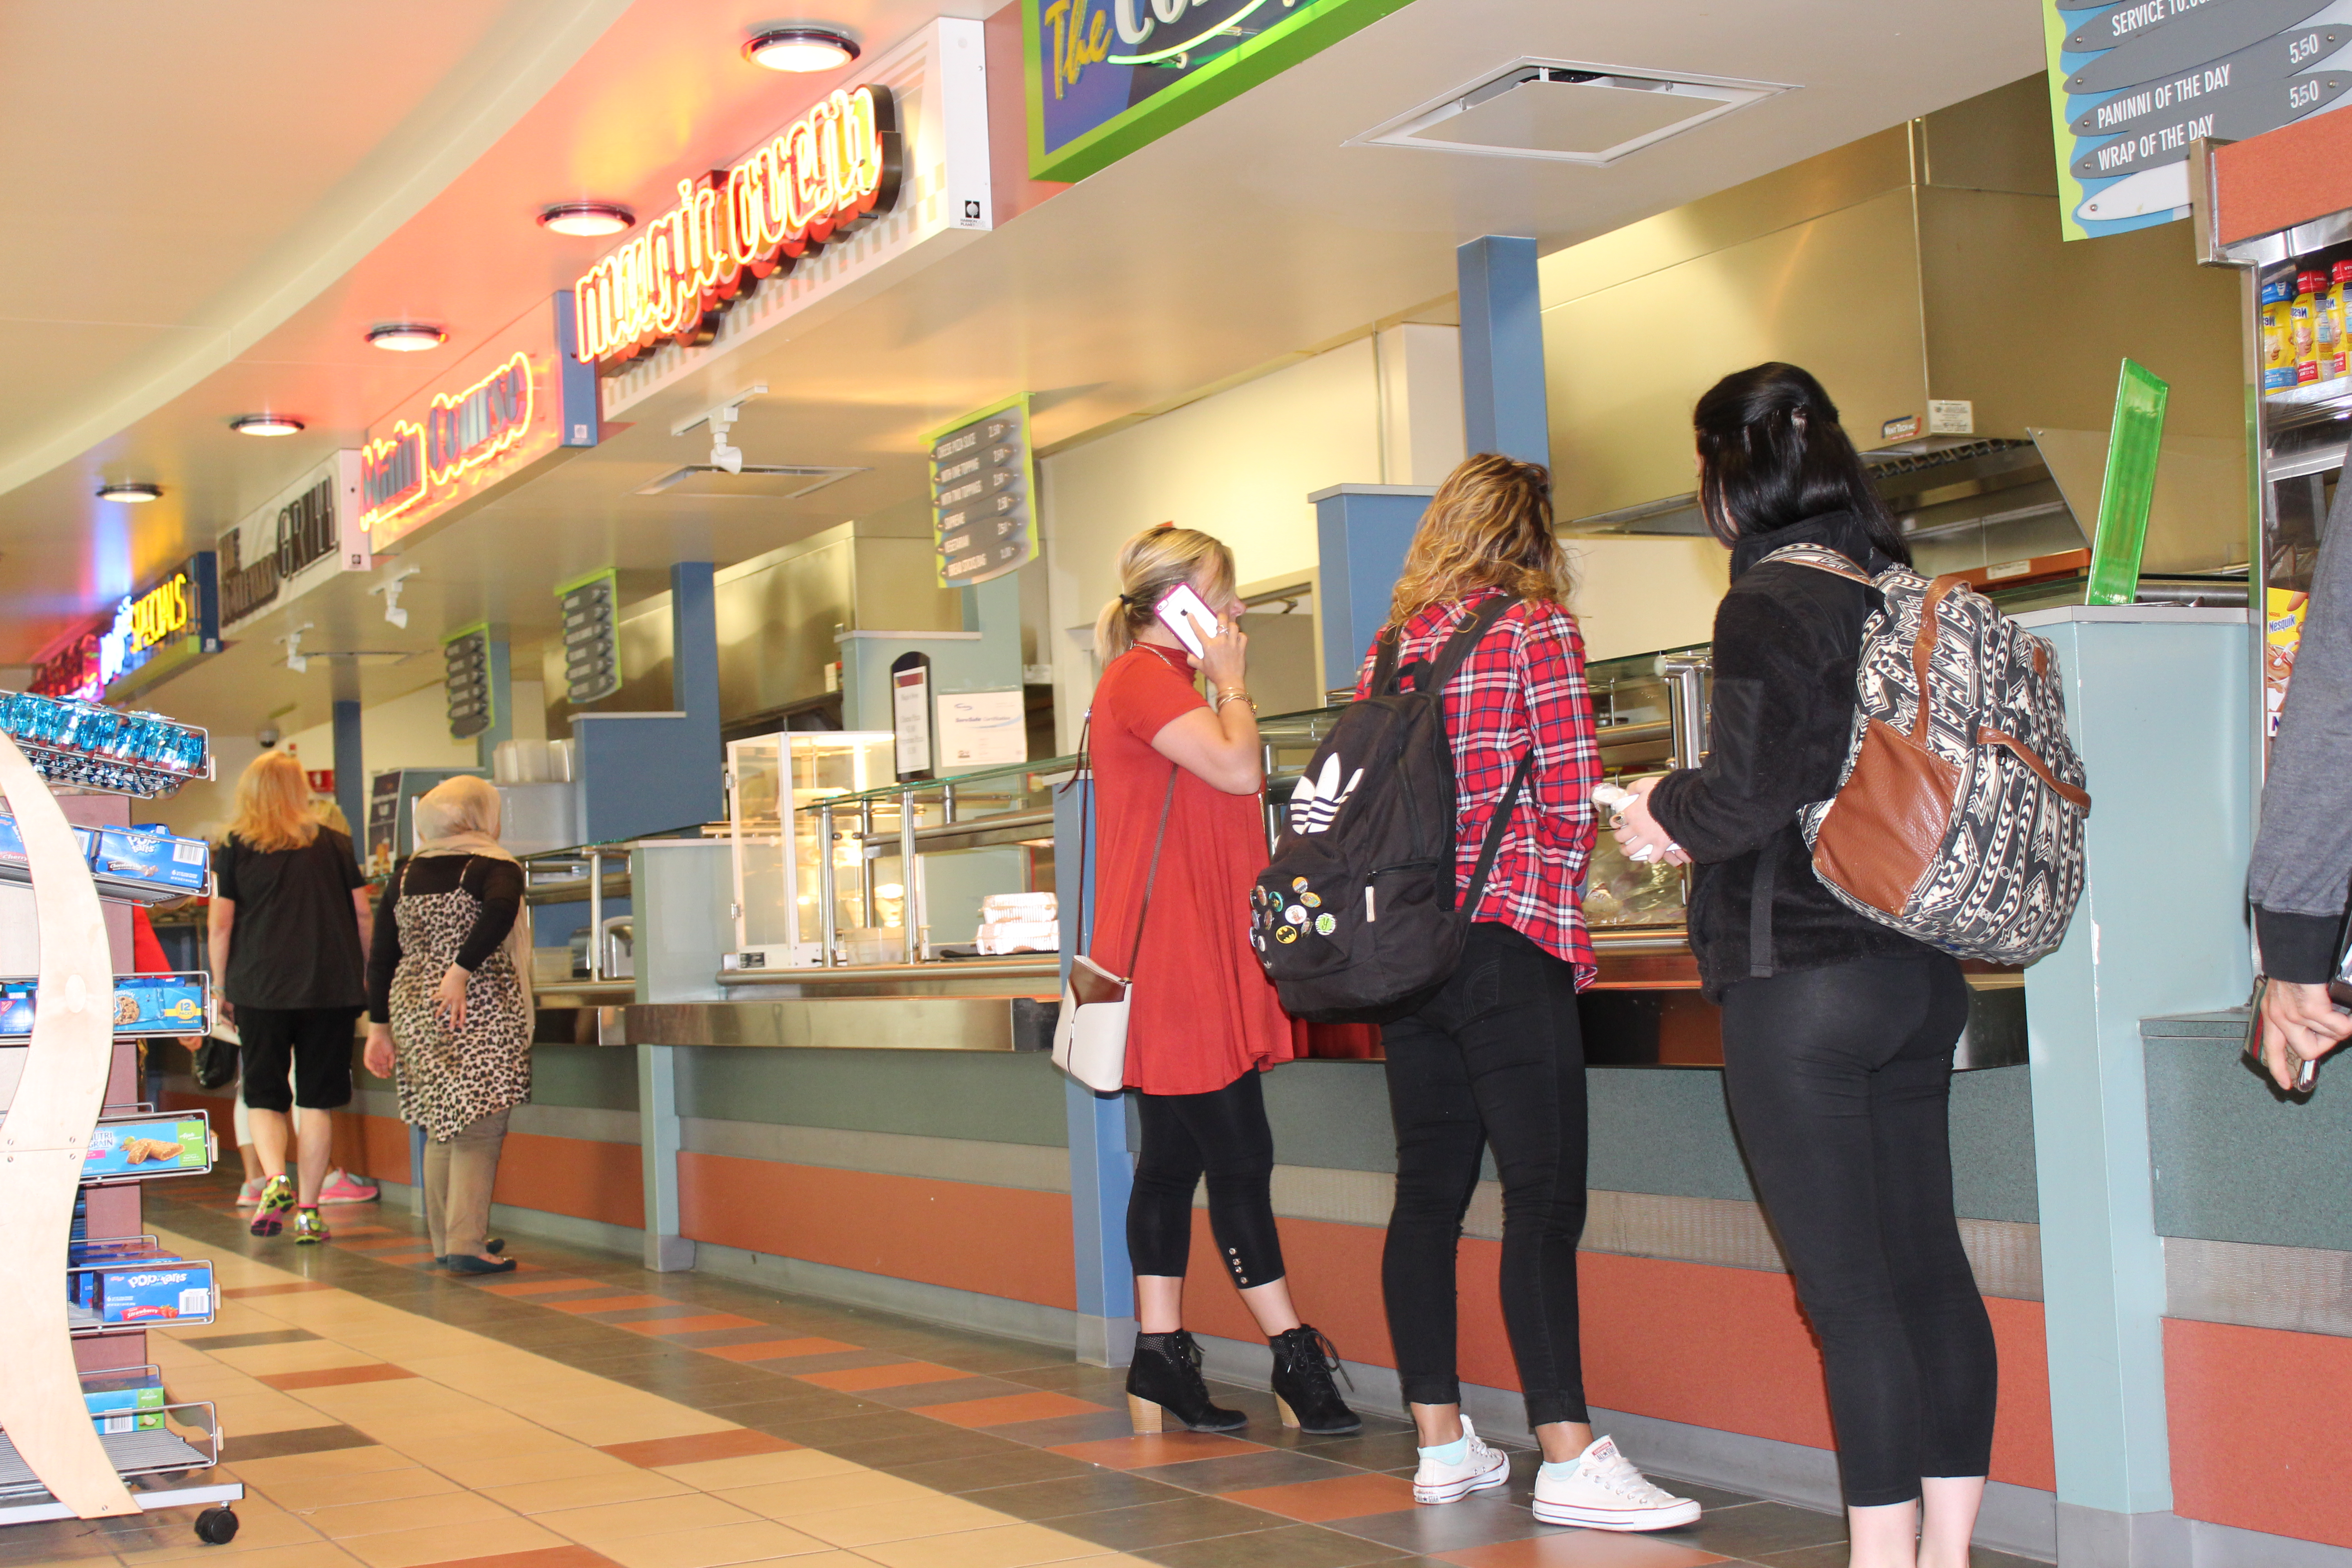 Students waiting for food at the cafeteria serving area with neon signs above them indicating different food options.